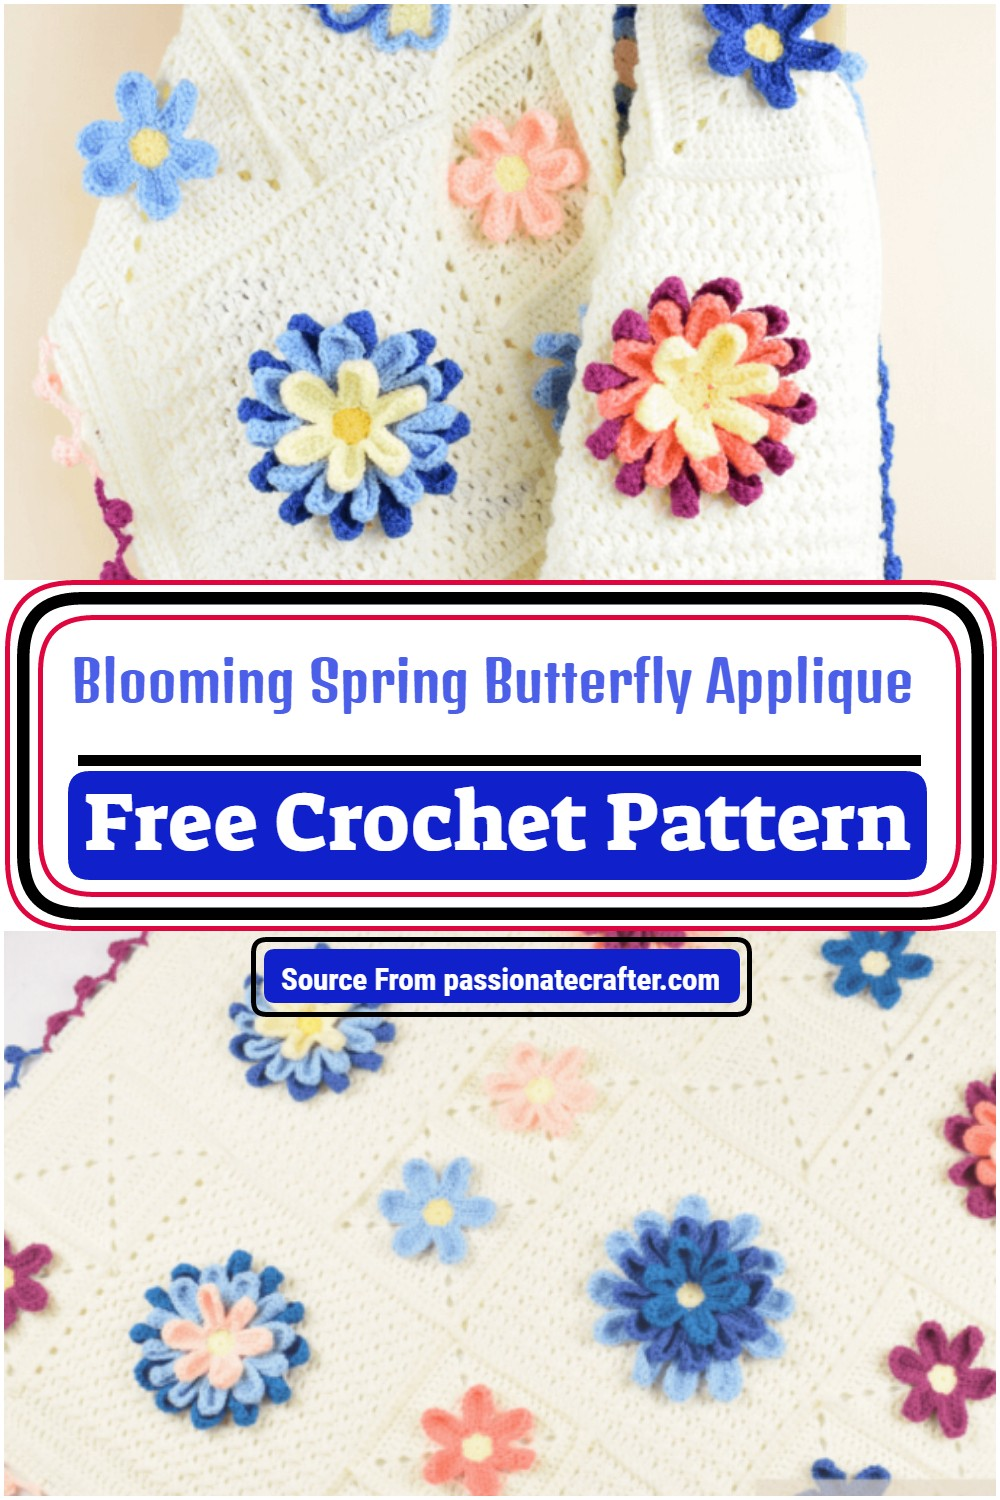 Blooming Spring Butterfly Applique Pattern